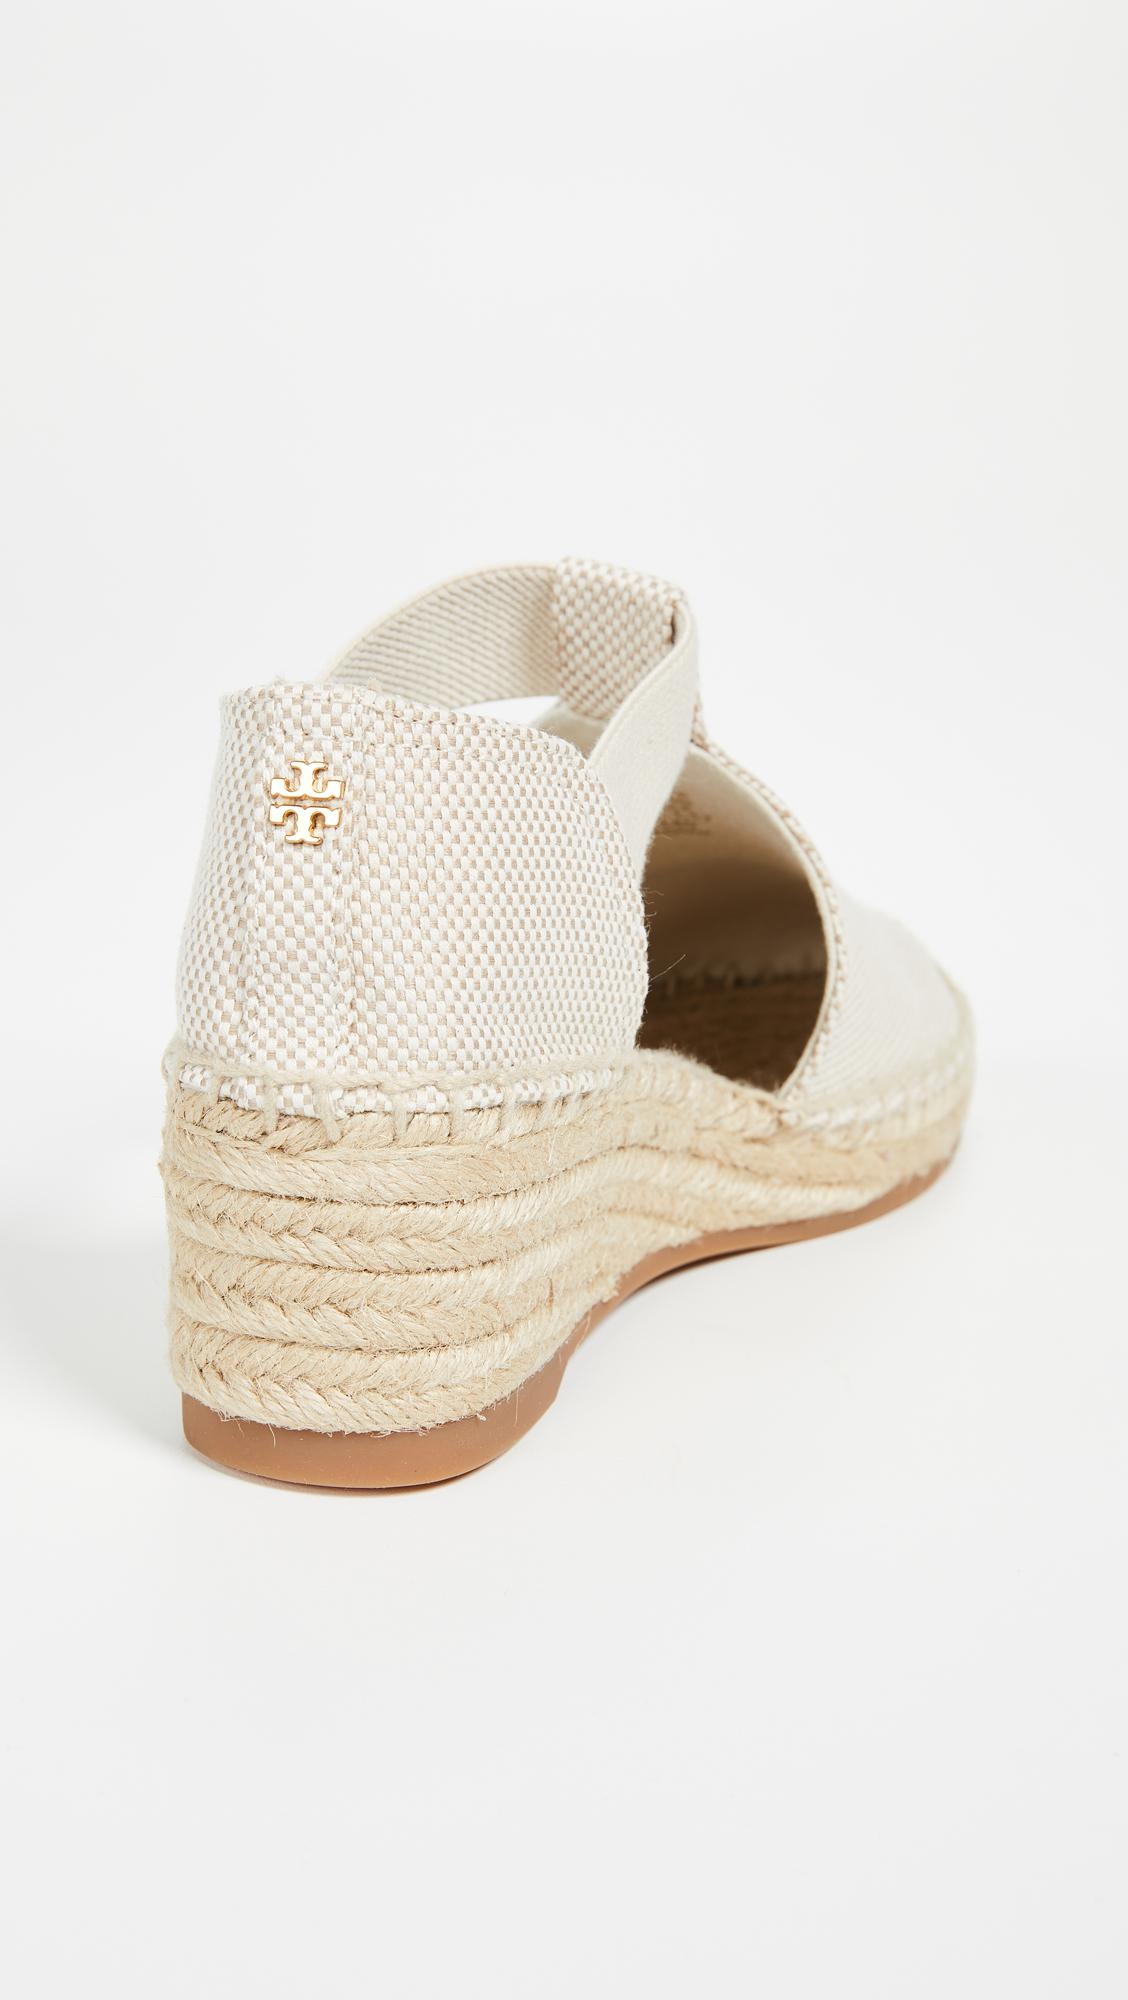 4ee1d29e6 Lyst - Tory Burch Catalina 3 50mm Espadrilles in Natural - Save 30%